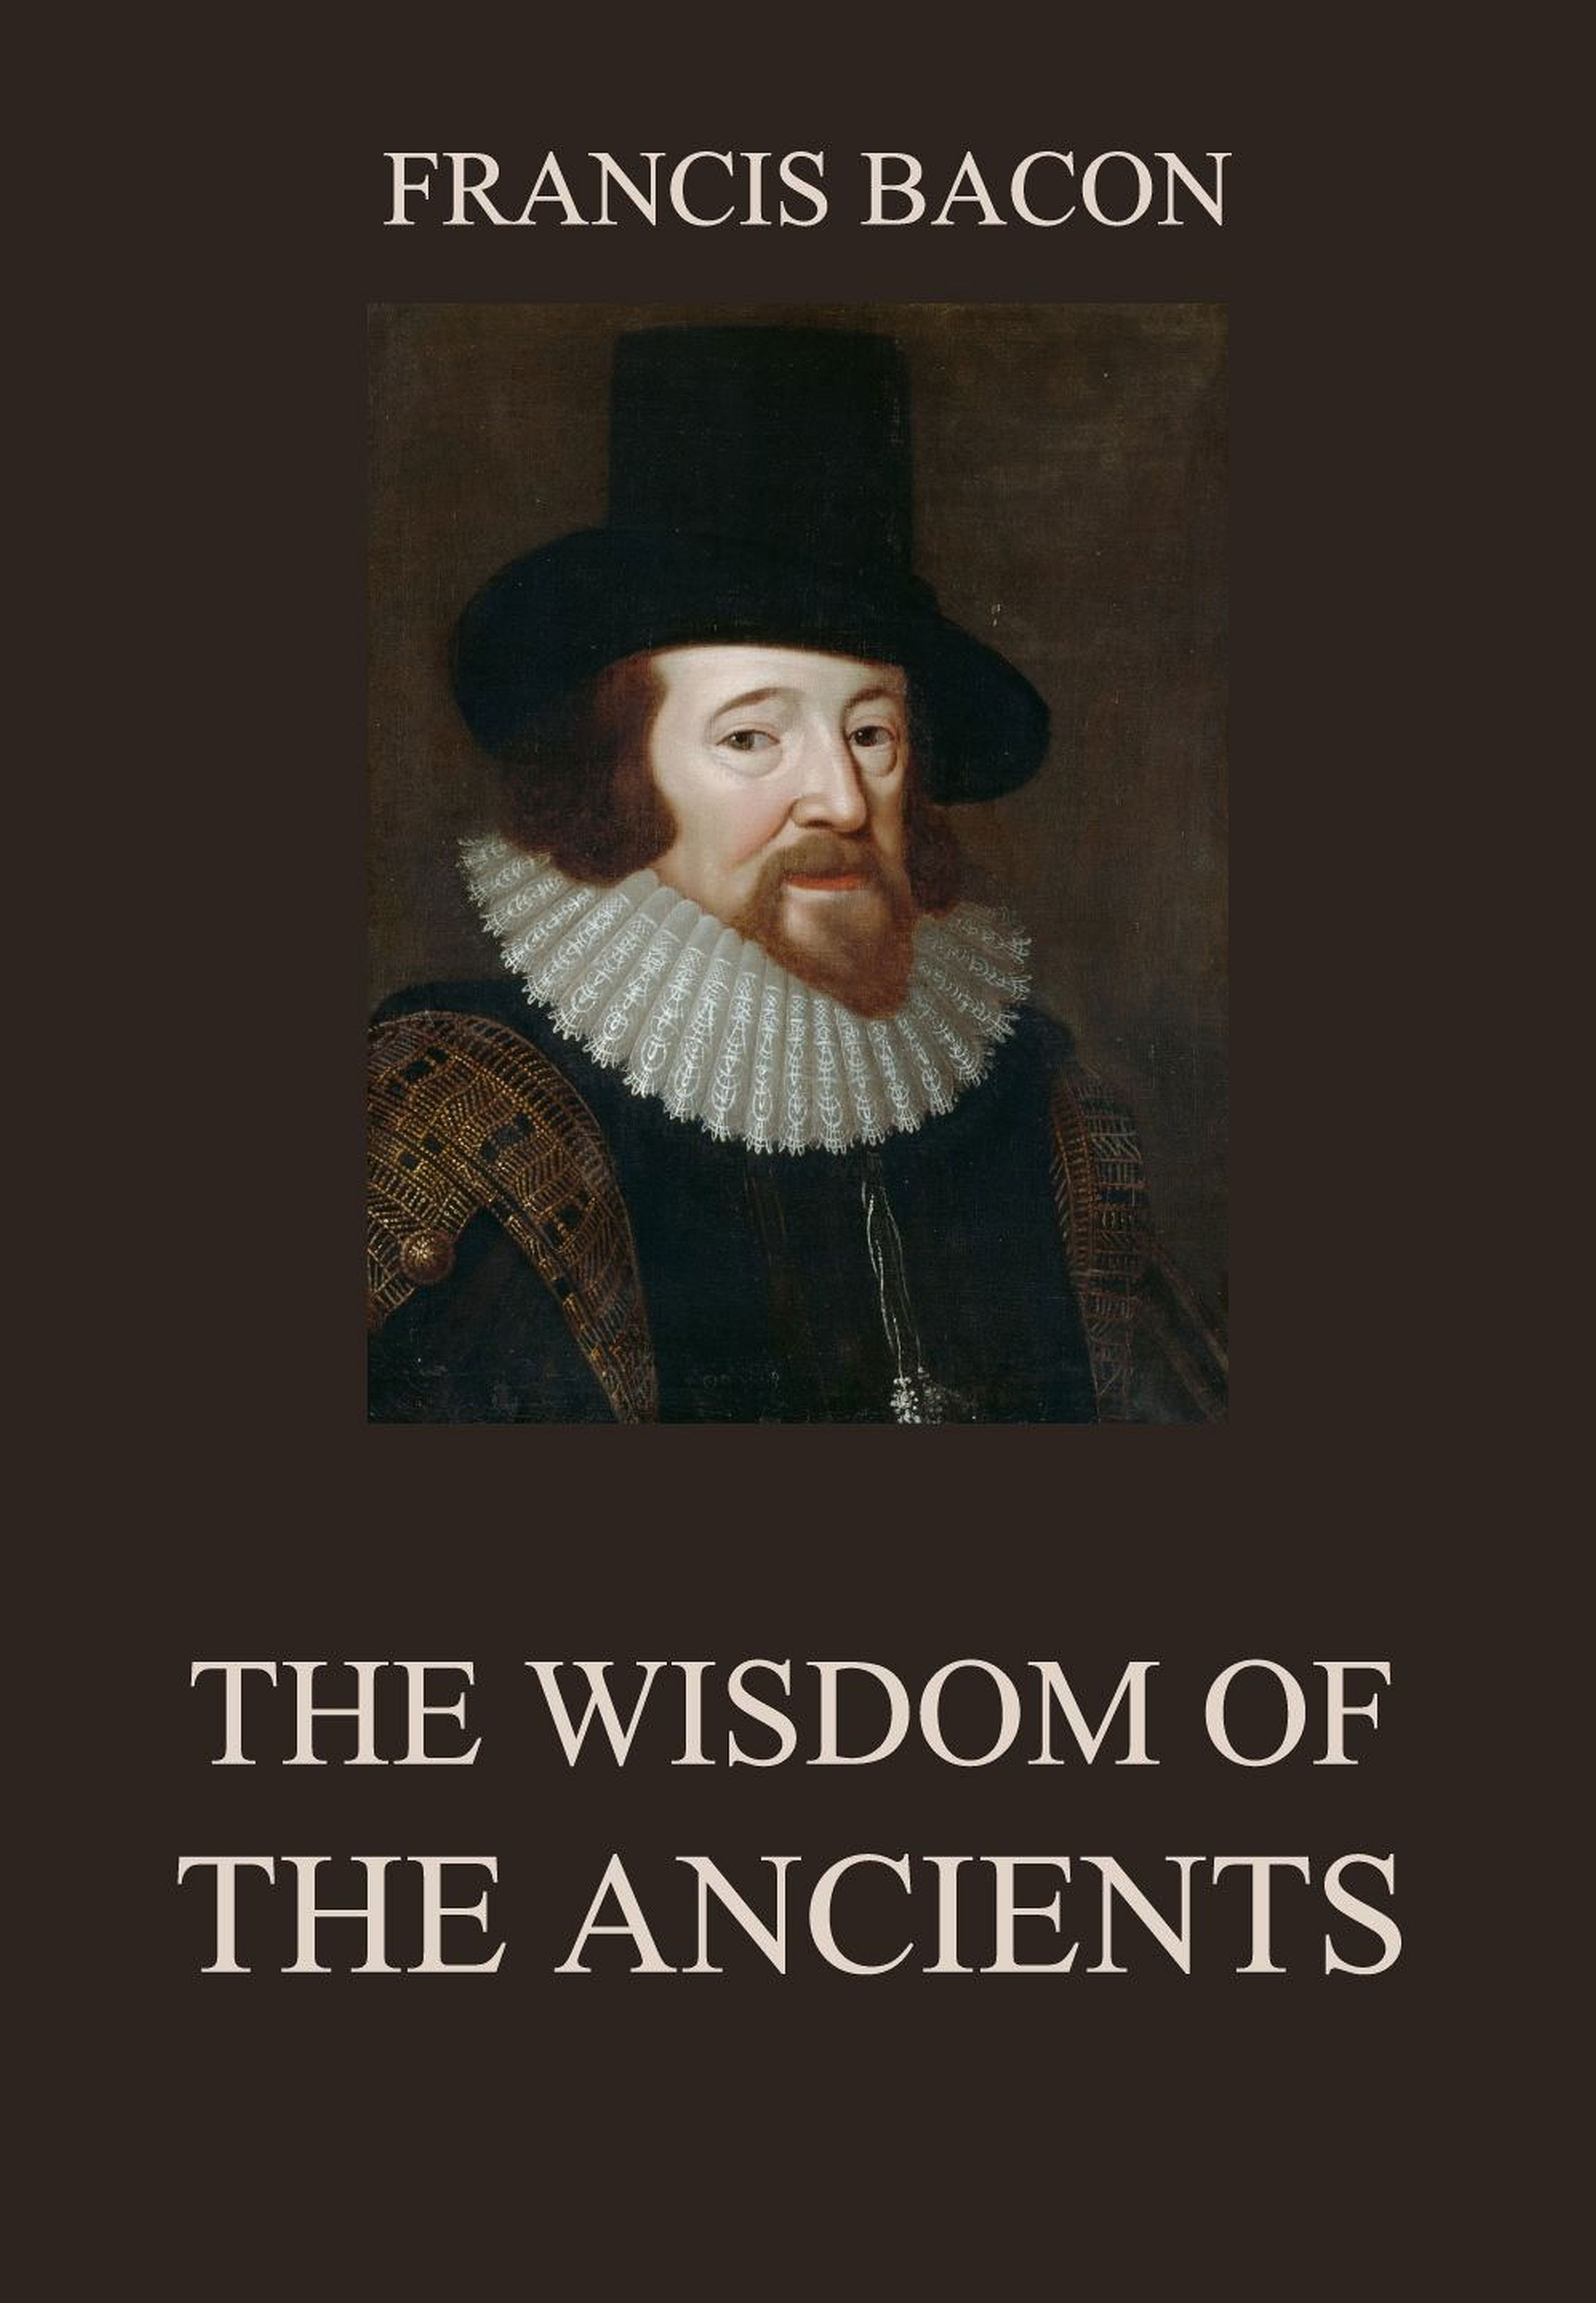 Francis Bacon The Wisdom of the Ancients